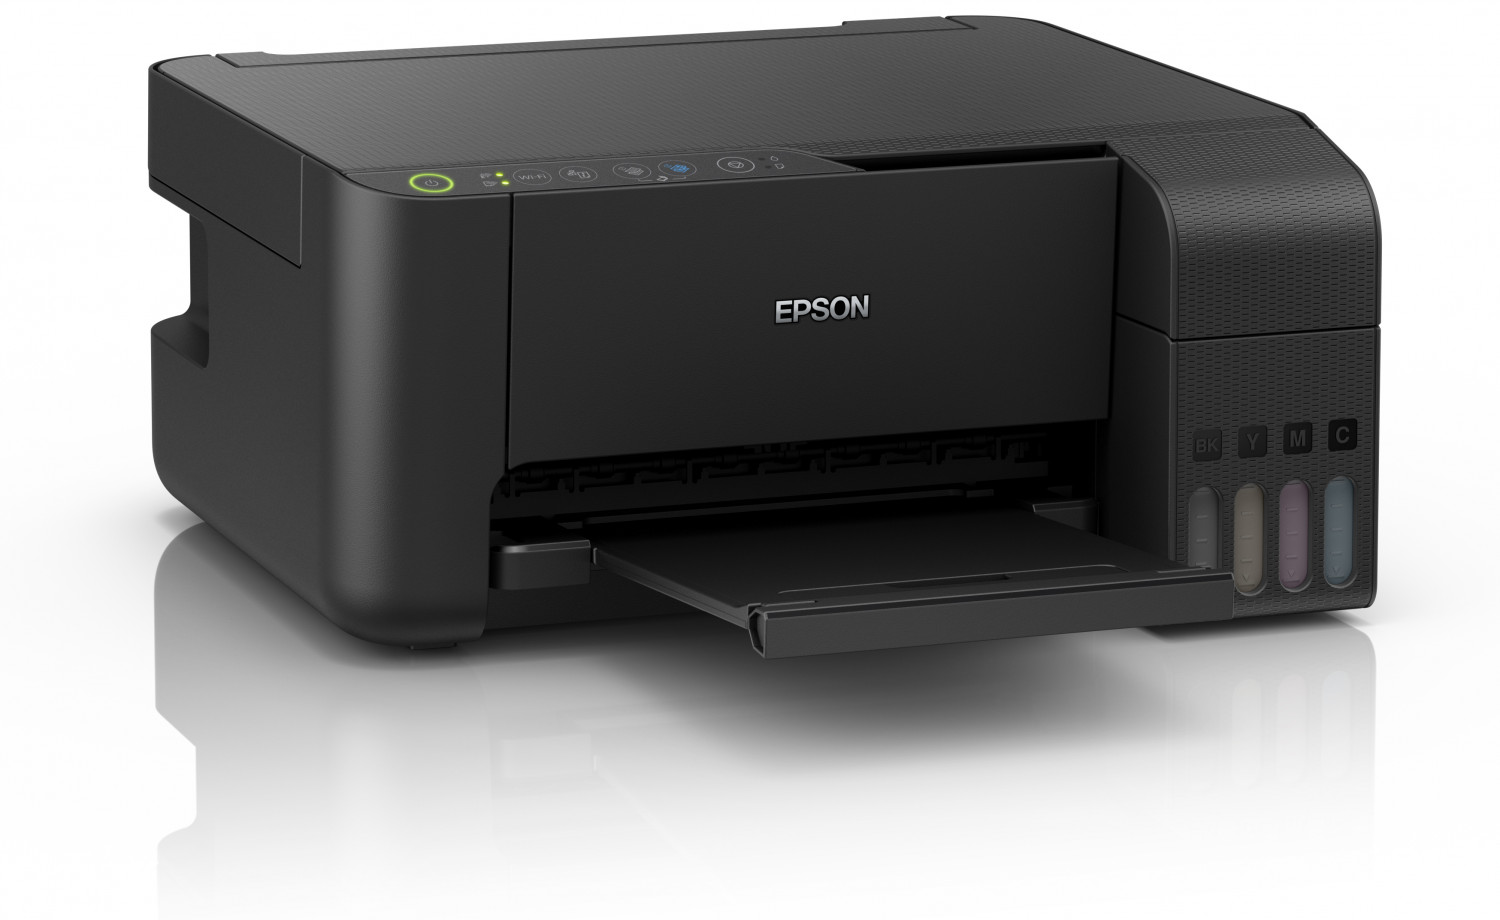 Wink Printer Solutions | Epson L3150 All In One WiFi Printer